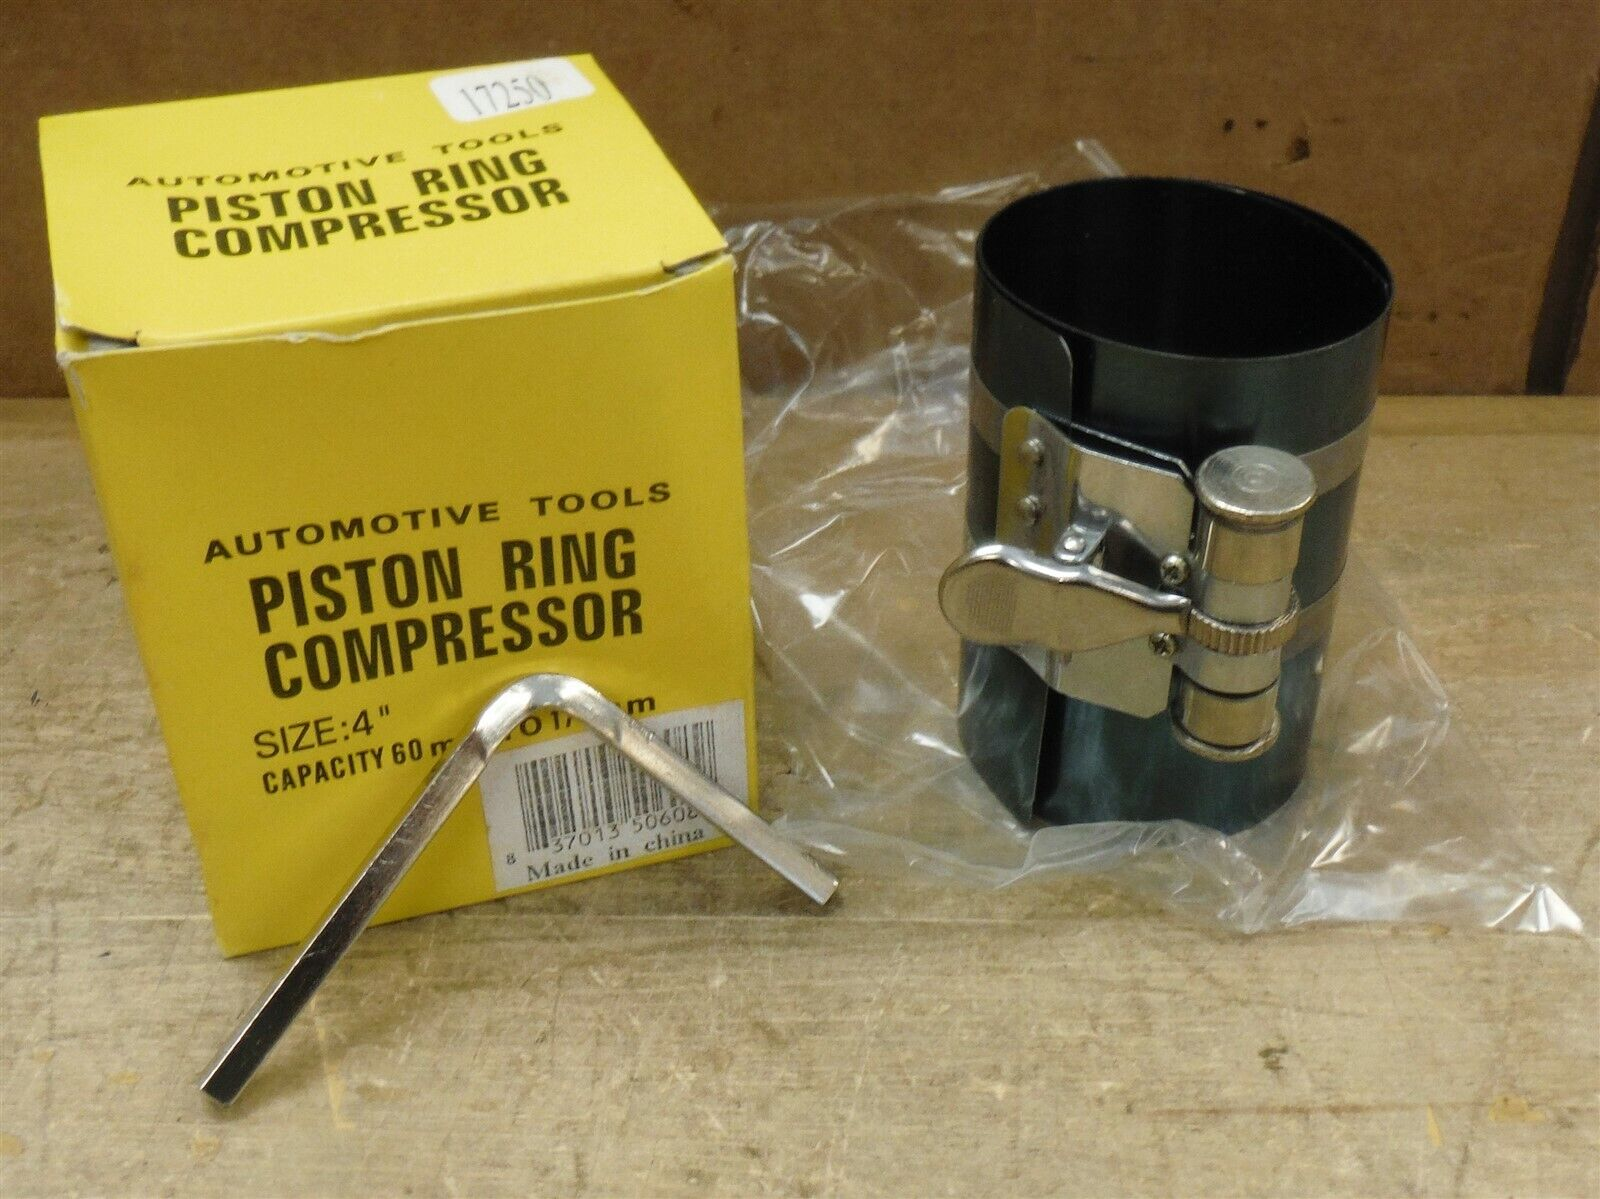 Automotive Tools 17250 Piston Ring Compressor 4″ 60mm-175mm FREE SHIP 221